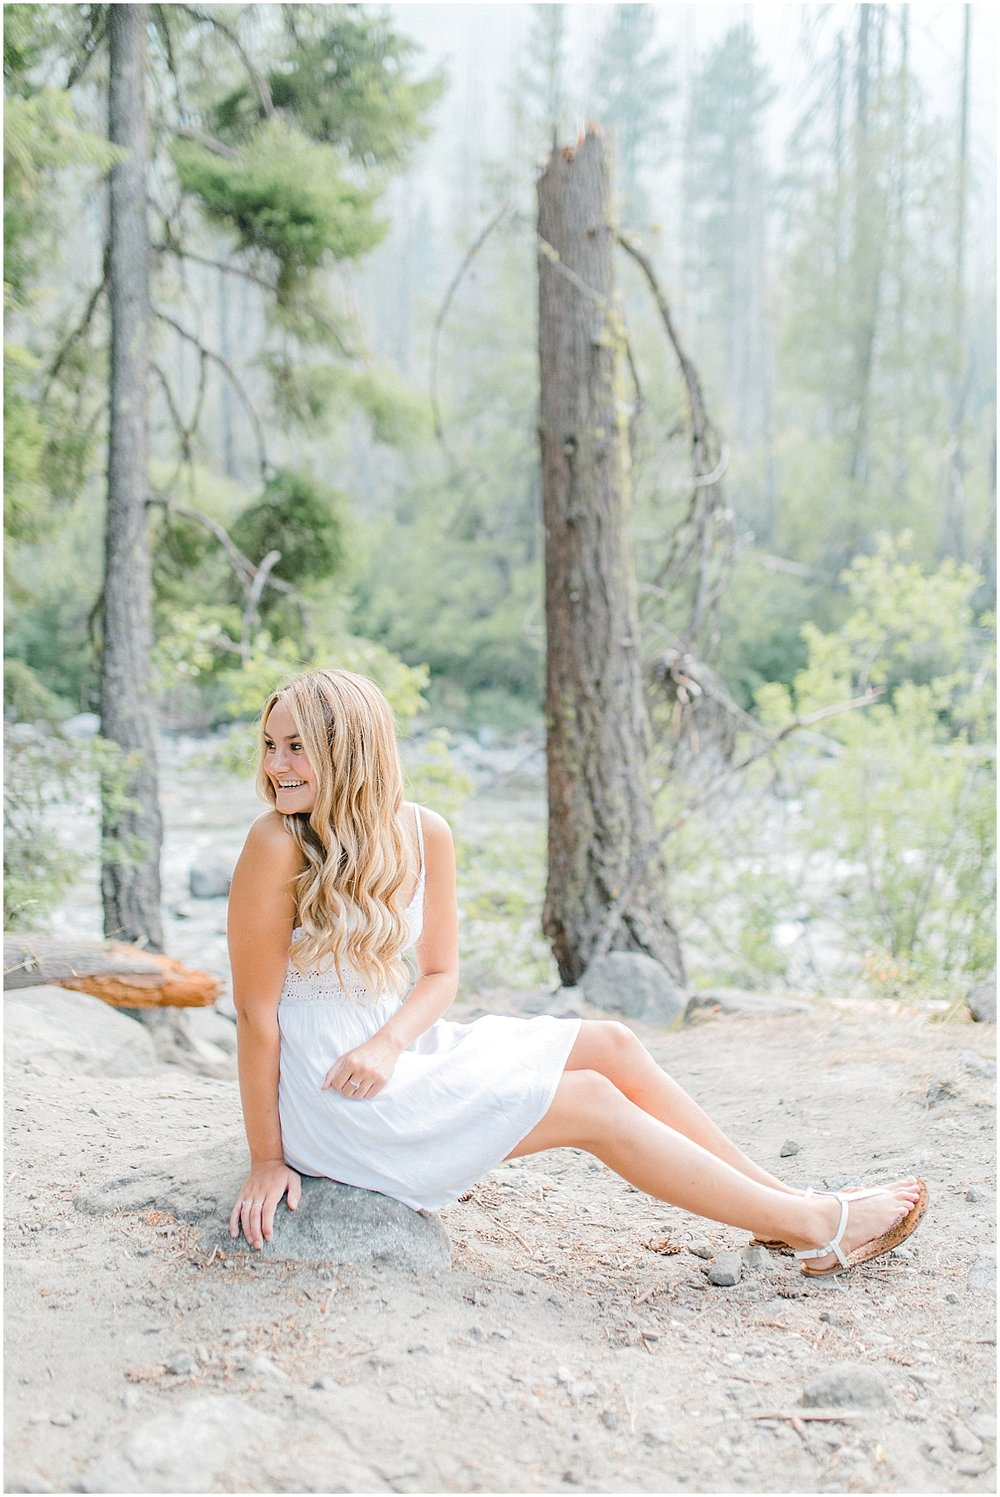 Emma Rose Company | Seattle Wedding and Portrait Photographer PNW | Light and Airy Style | Senior Style Guide What to Wear | Senior Portraits Leavenworth, Washington | Kindred Presets Film Style_0022.jpg